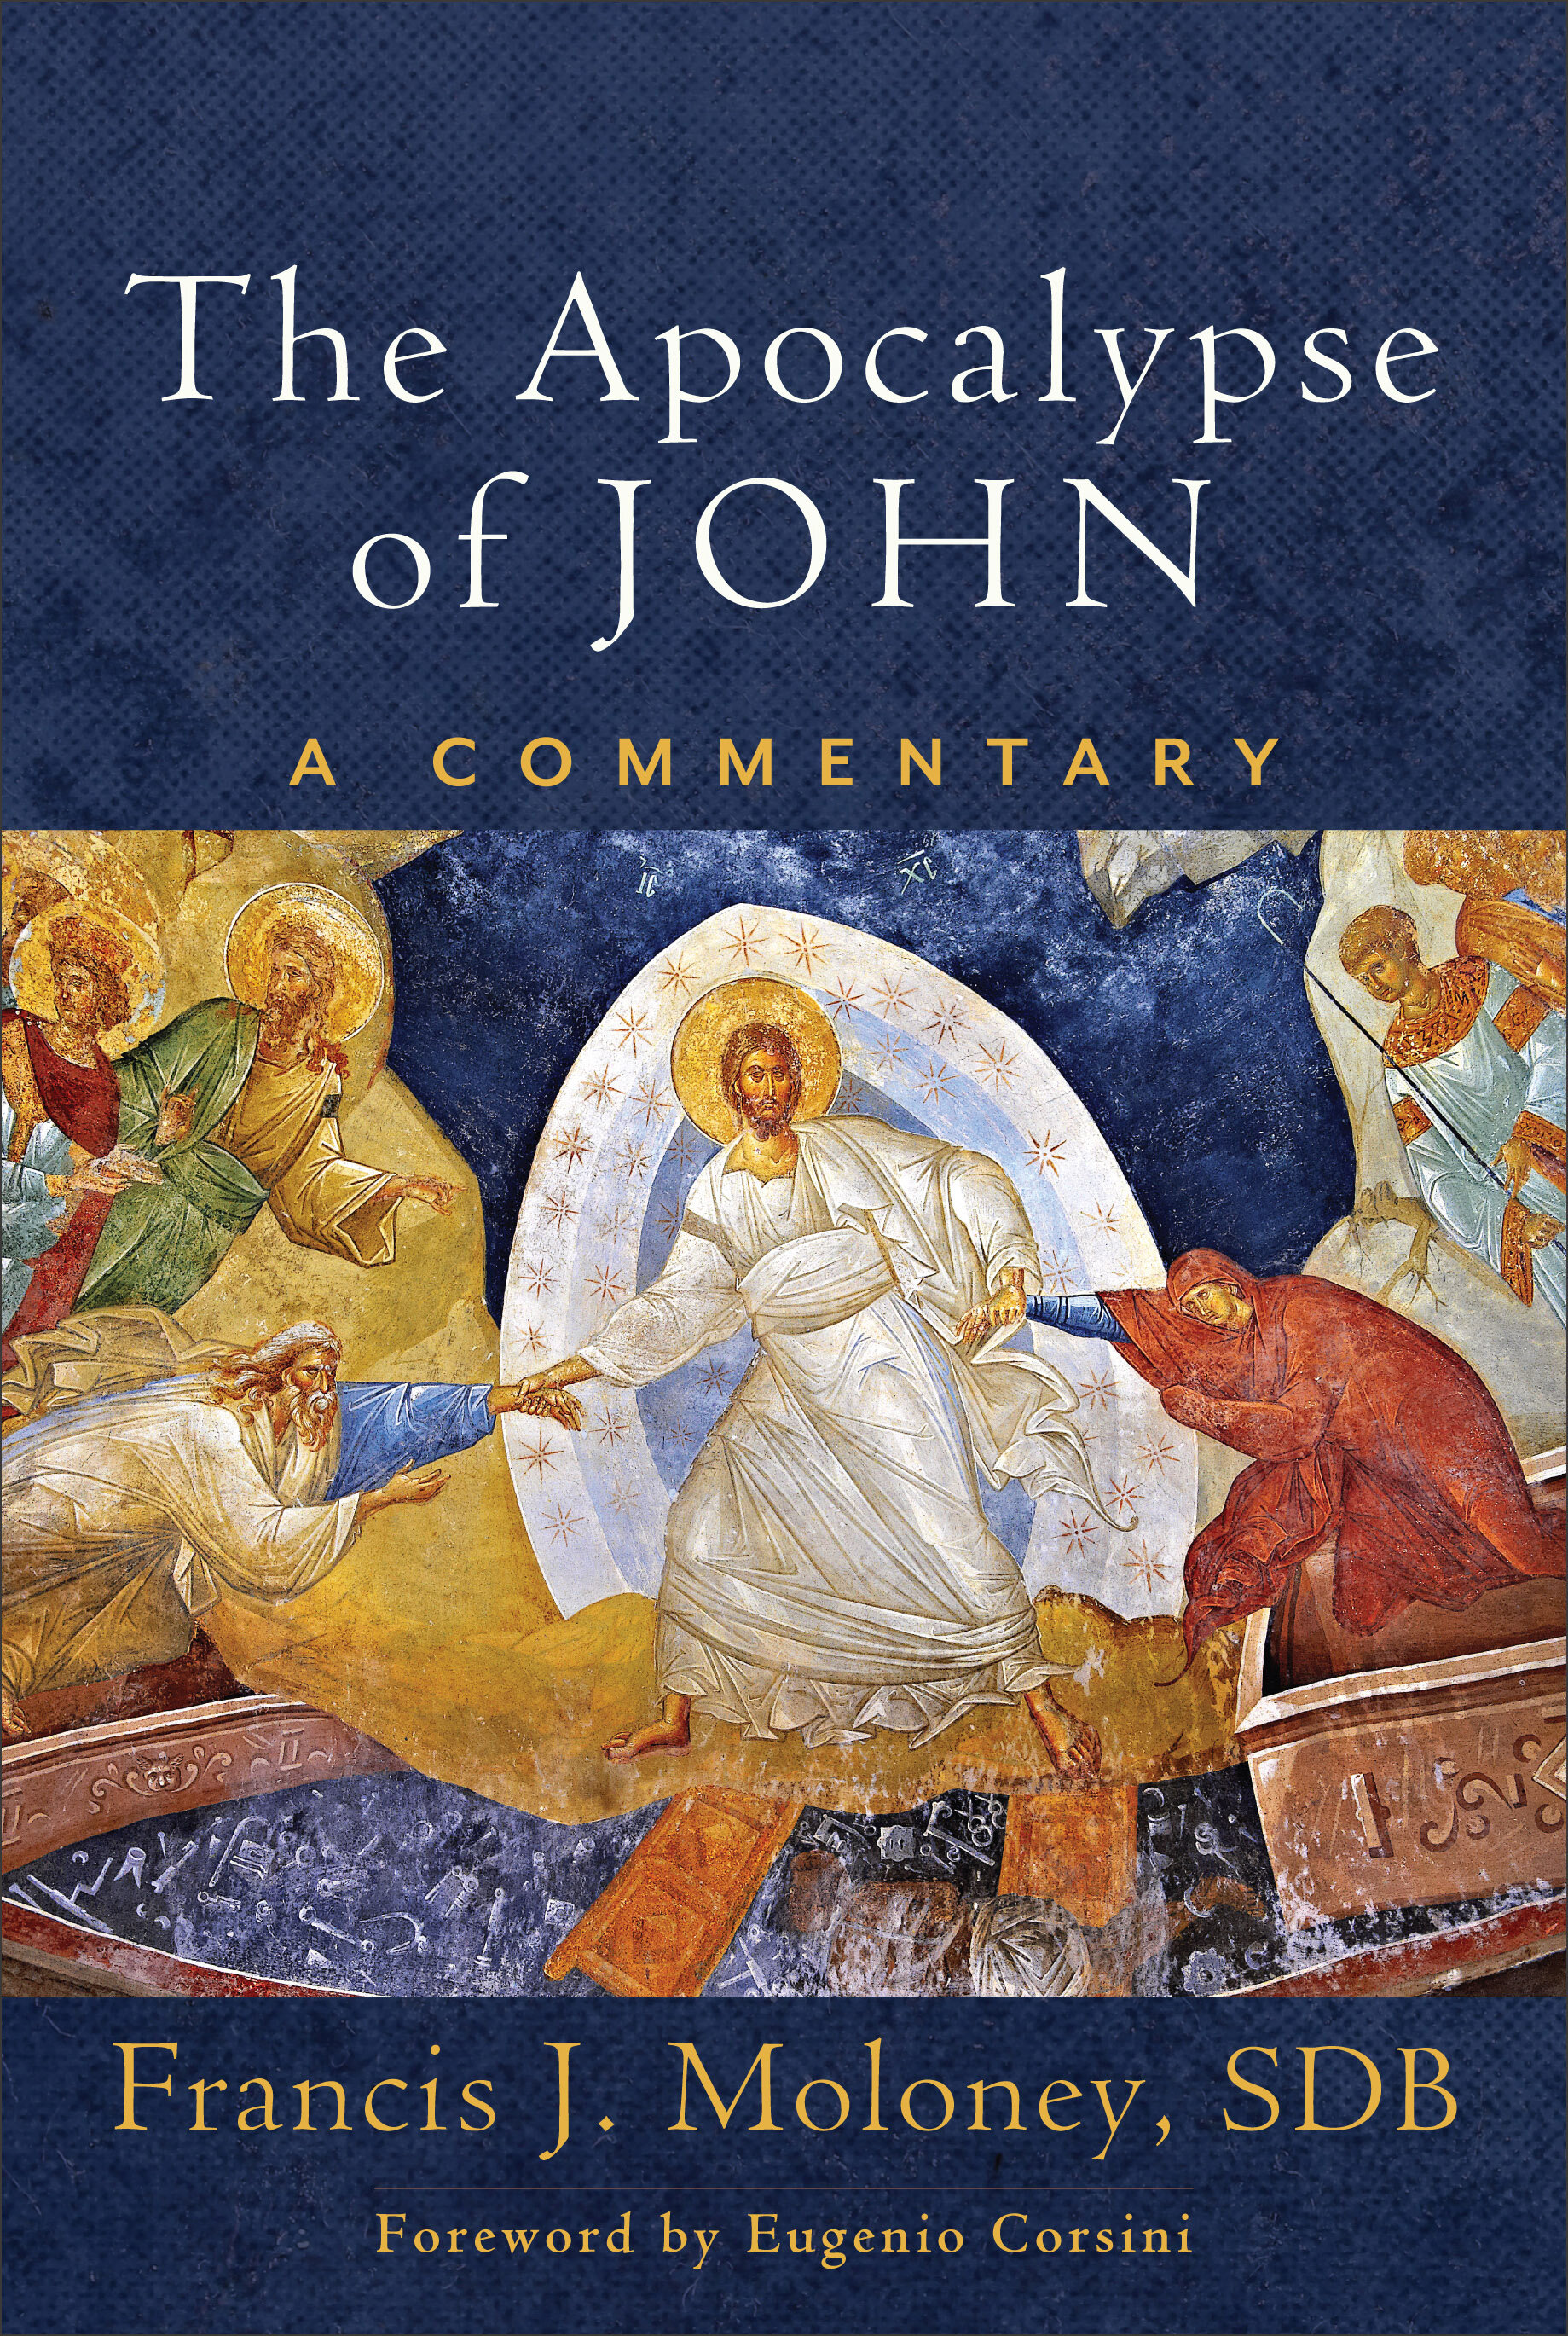 The Apocalypse of John: A Commentary